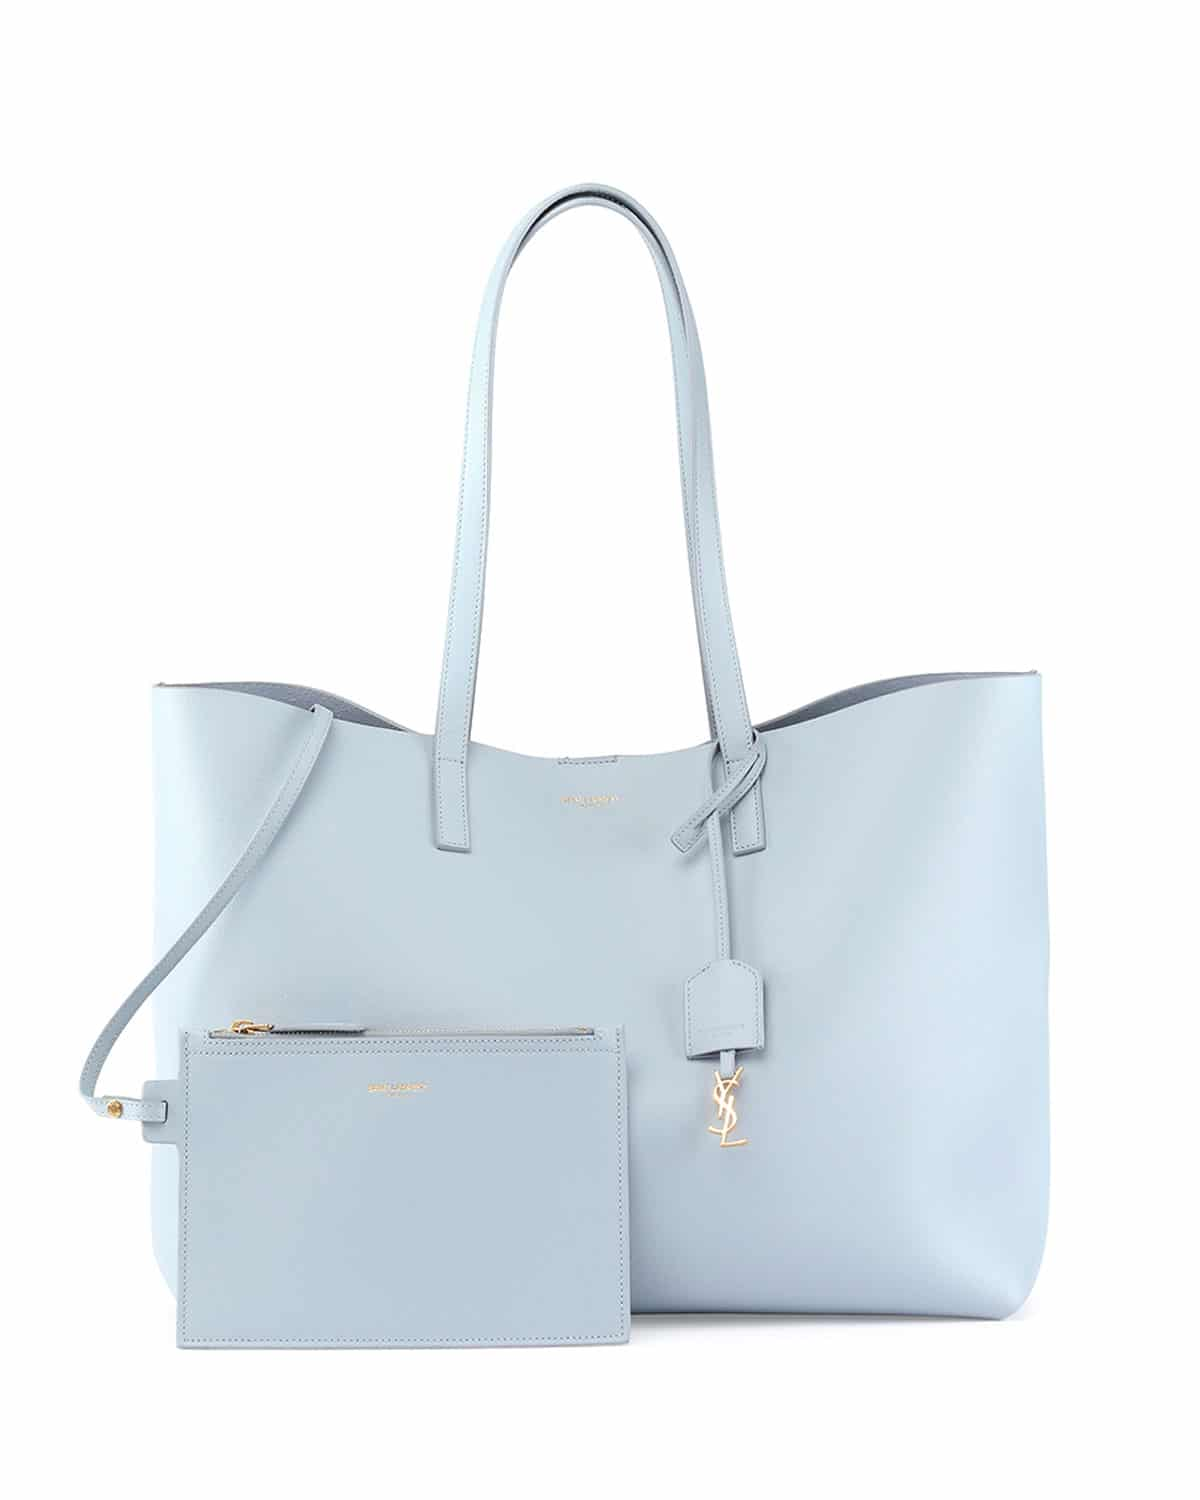 0491565cc51 large shopping saint laurent tote bag in dove white leather